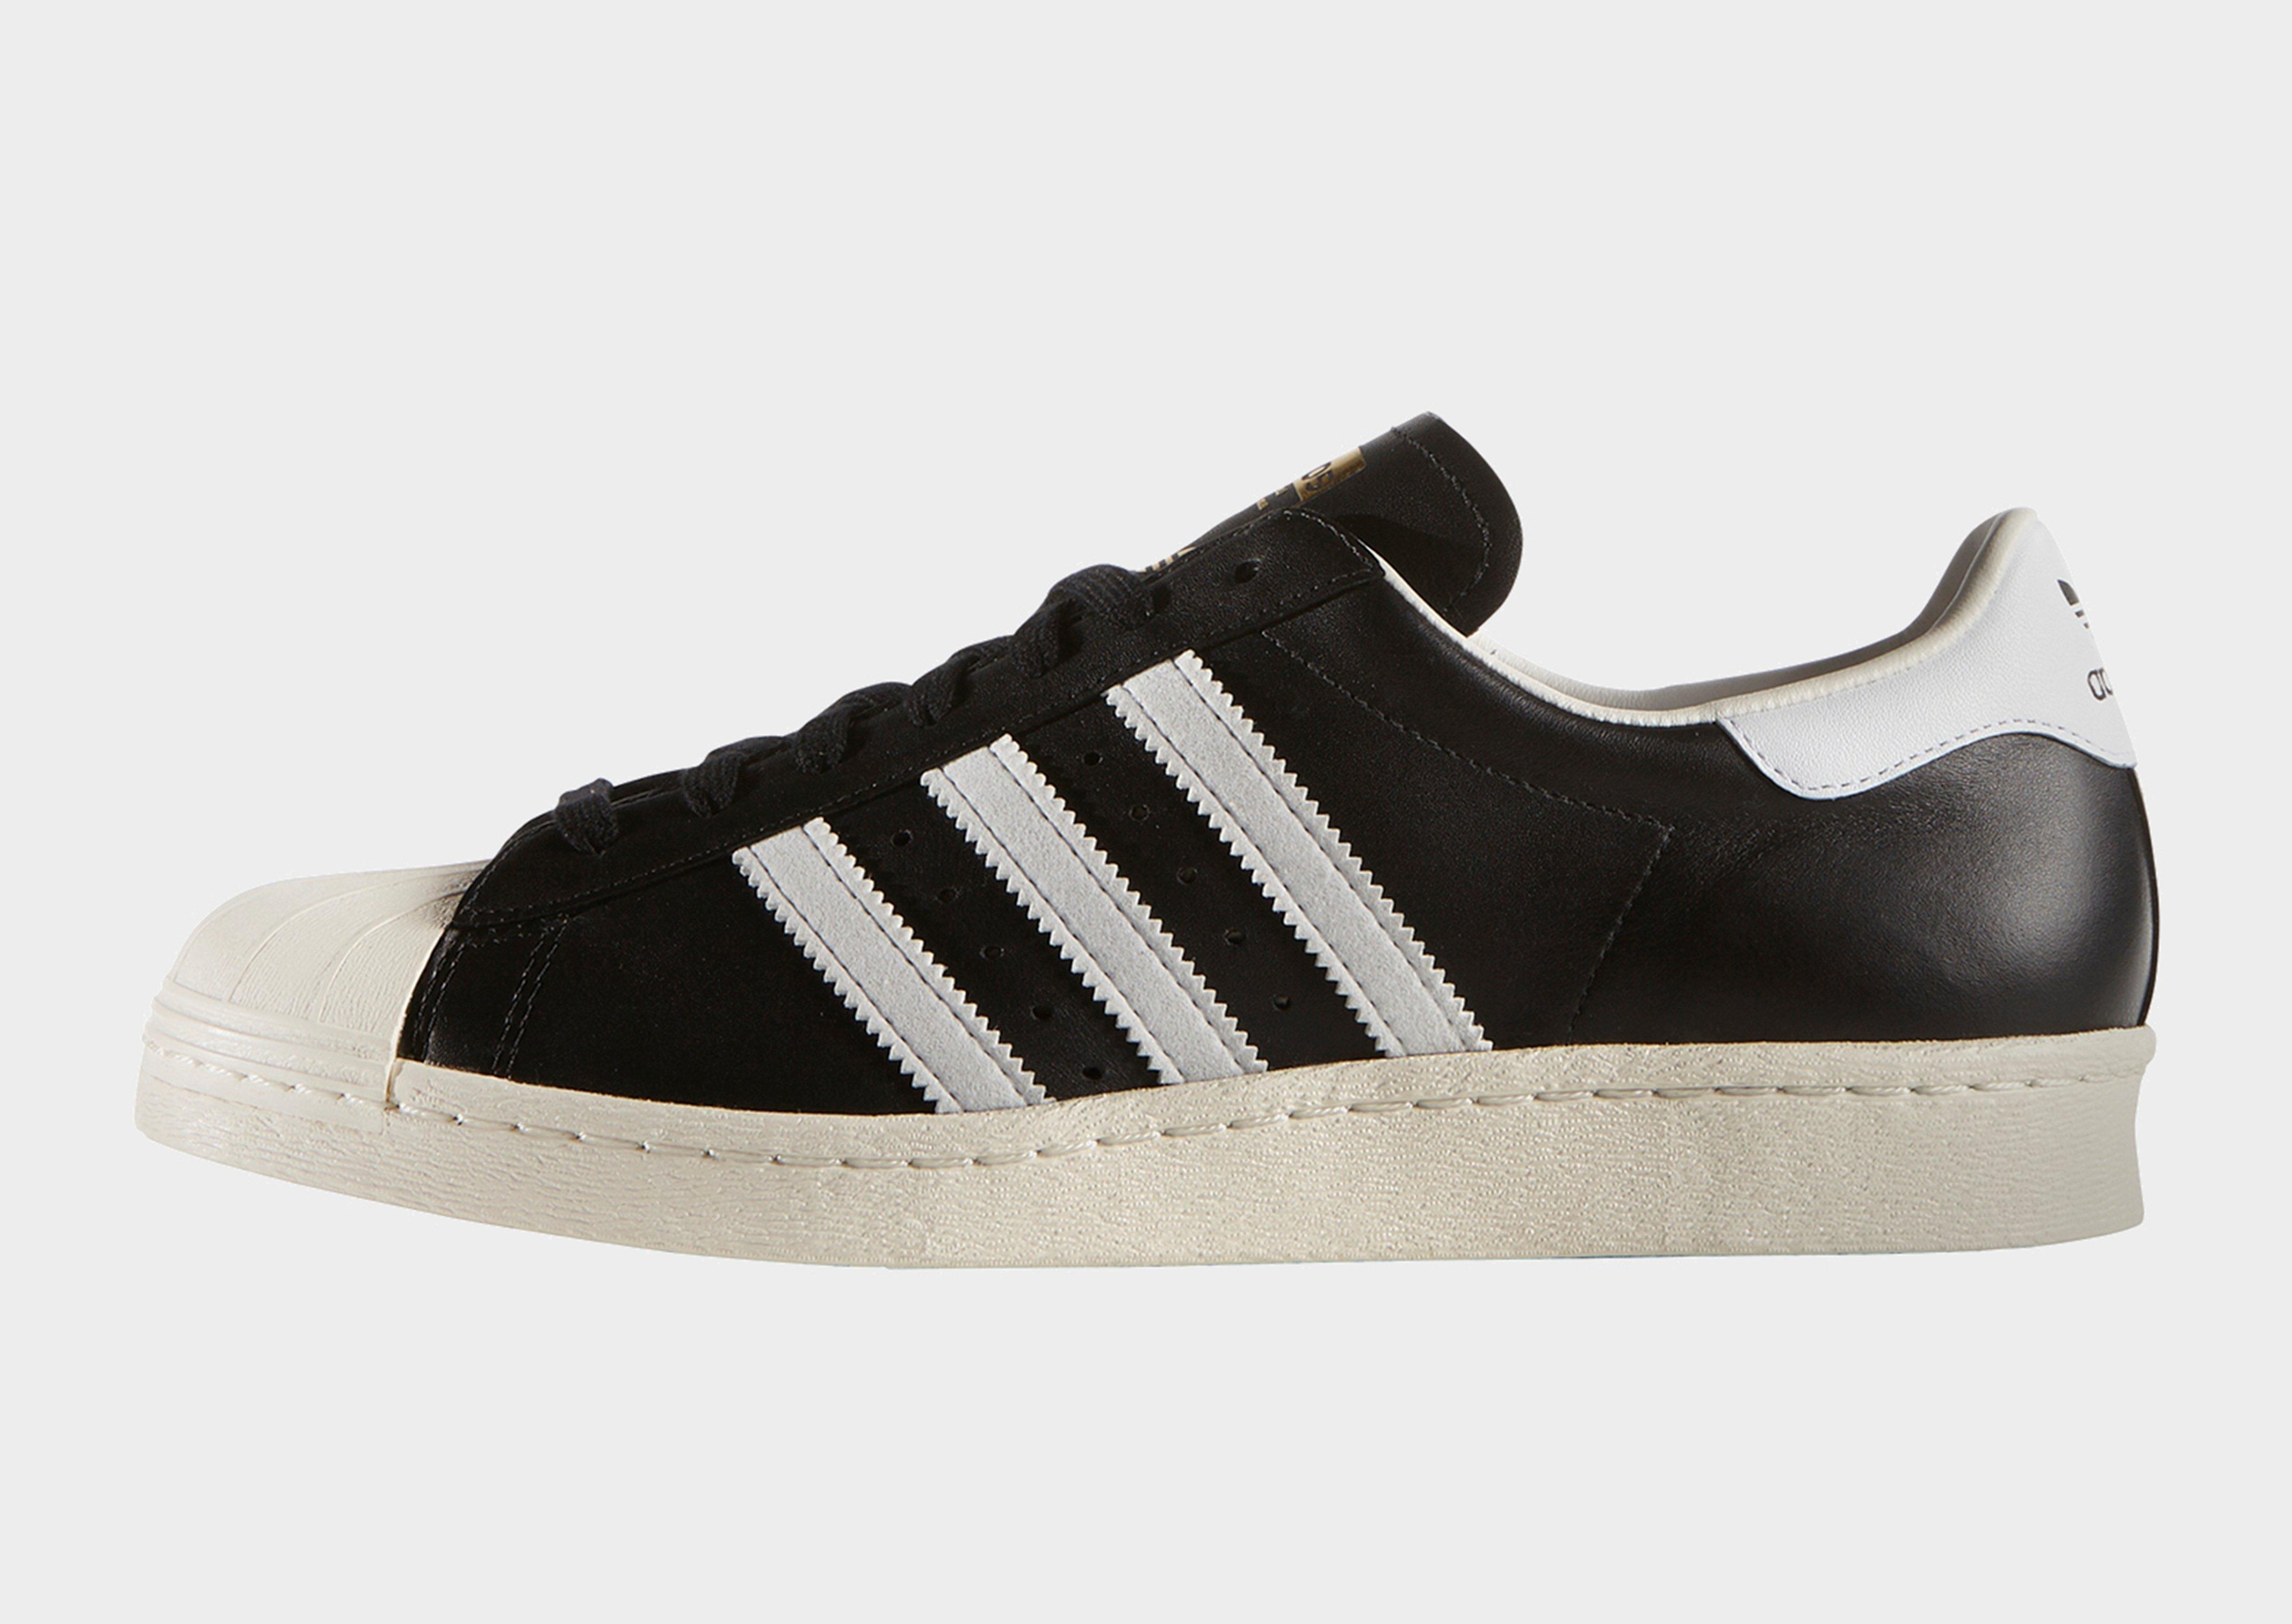 ADIDAS Superstar 80s Shoes | JD Sports